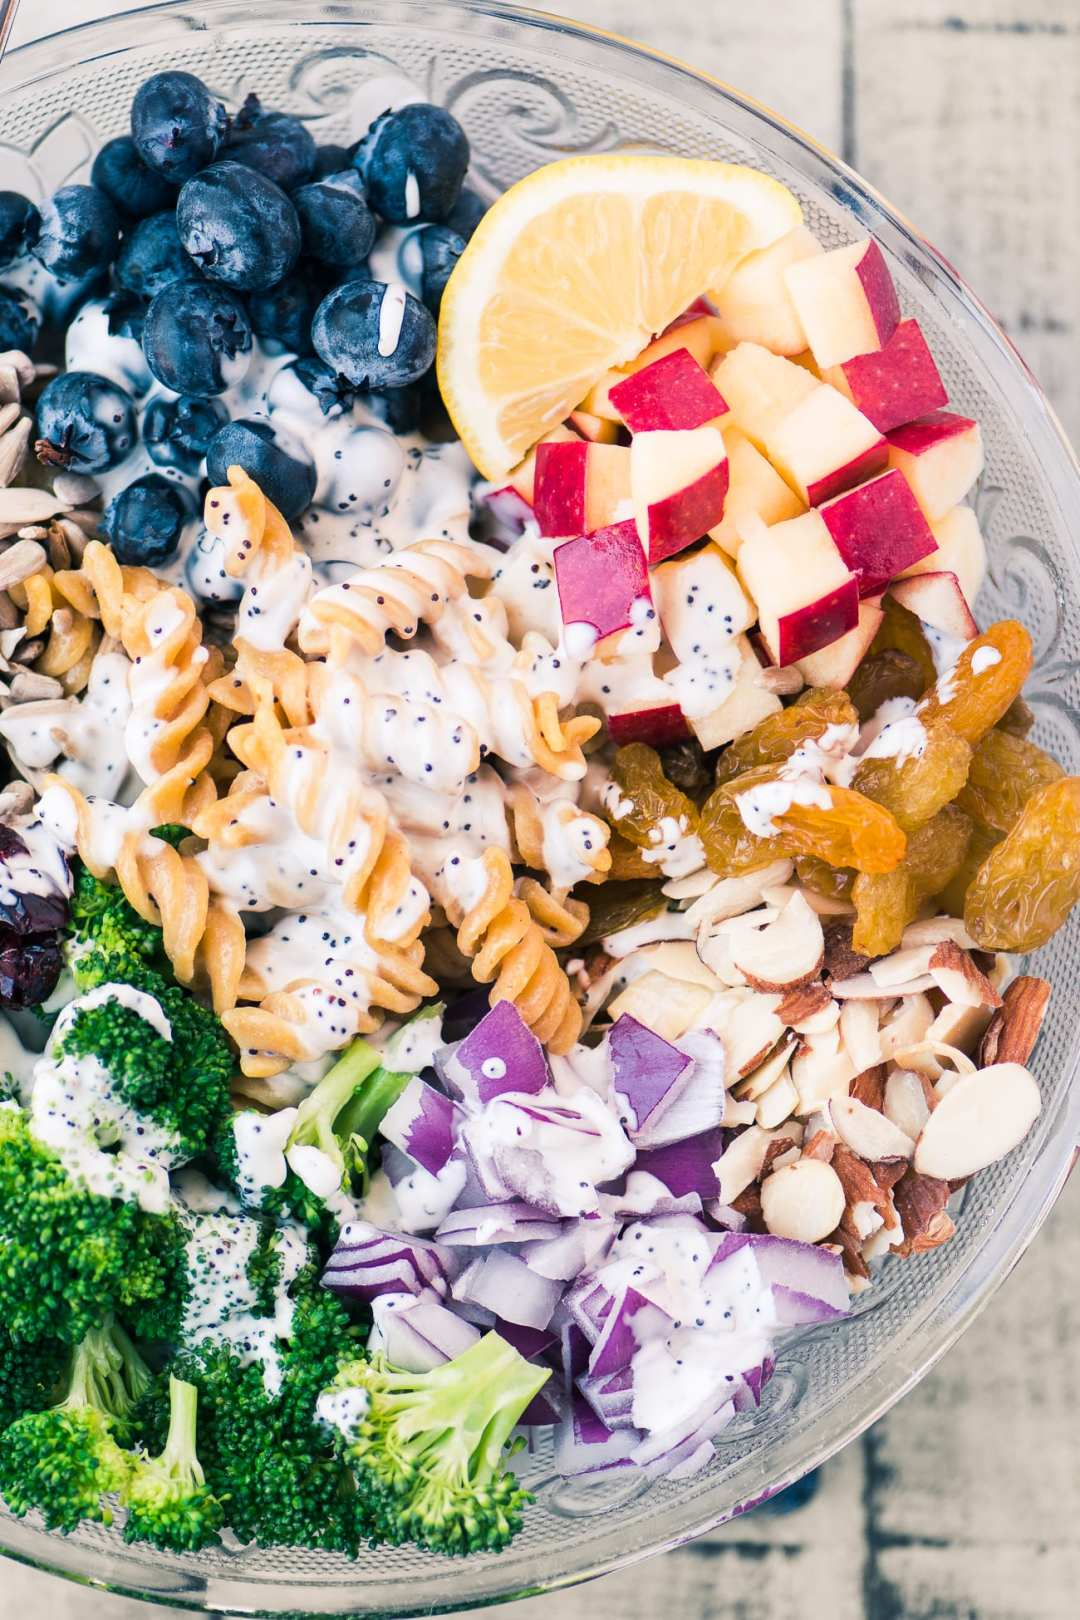 Broccoli and Blueberry Pasta Salad with Lemon Buttermilk Dressing is a fresh, healthy, and gluten free pasta salad just bursting with flavor and crunchy texture!